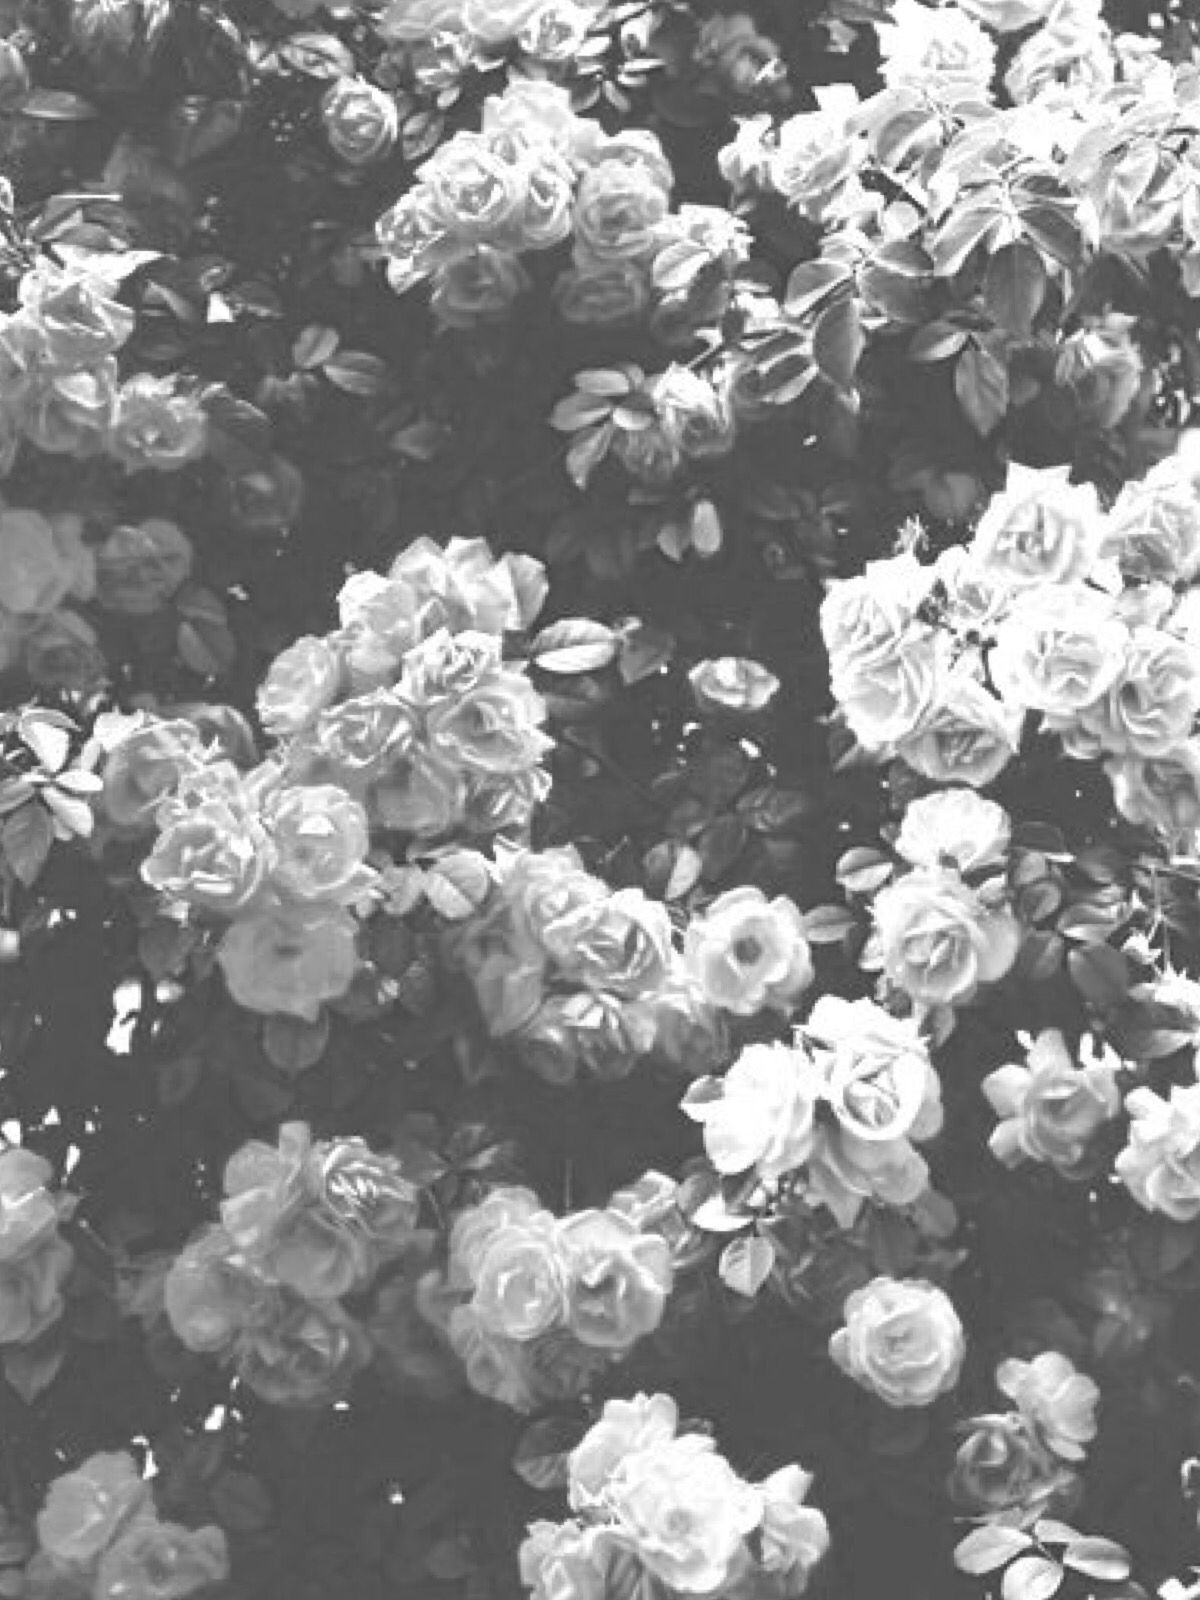 Black And White Rose Wallpapers On Wallpaperdog Black Rose Wallpaperdog Wallp Black R In 2020 White Roses Wallpaper Black And White Roses White Flower Wallpaper